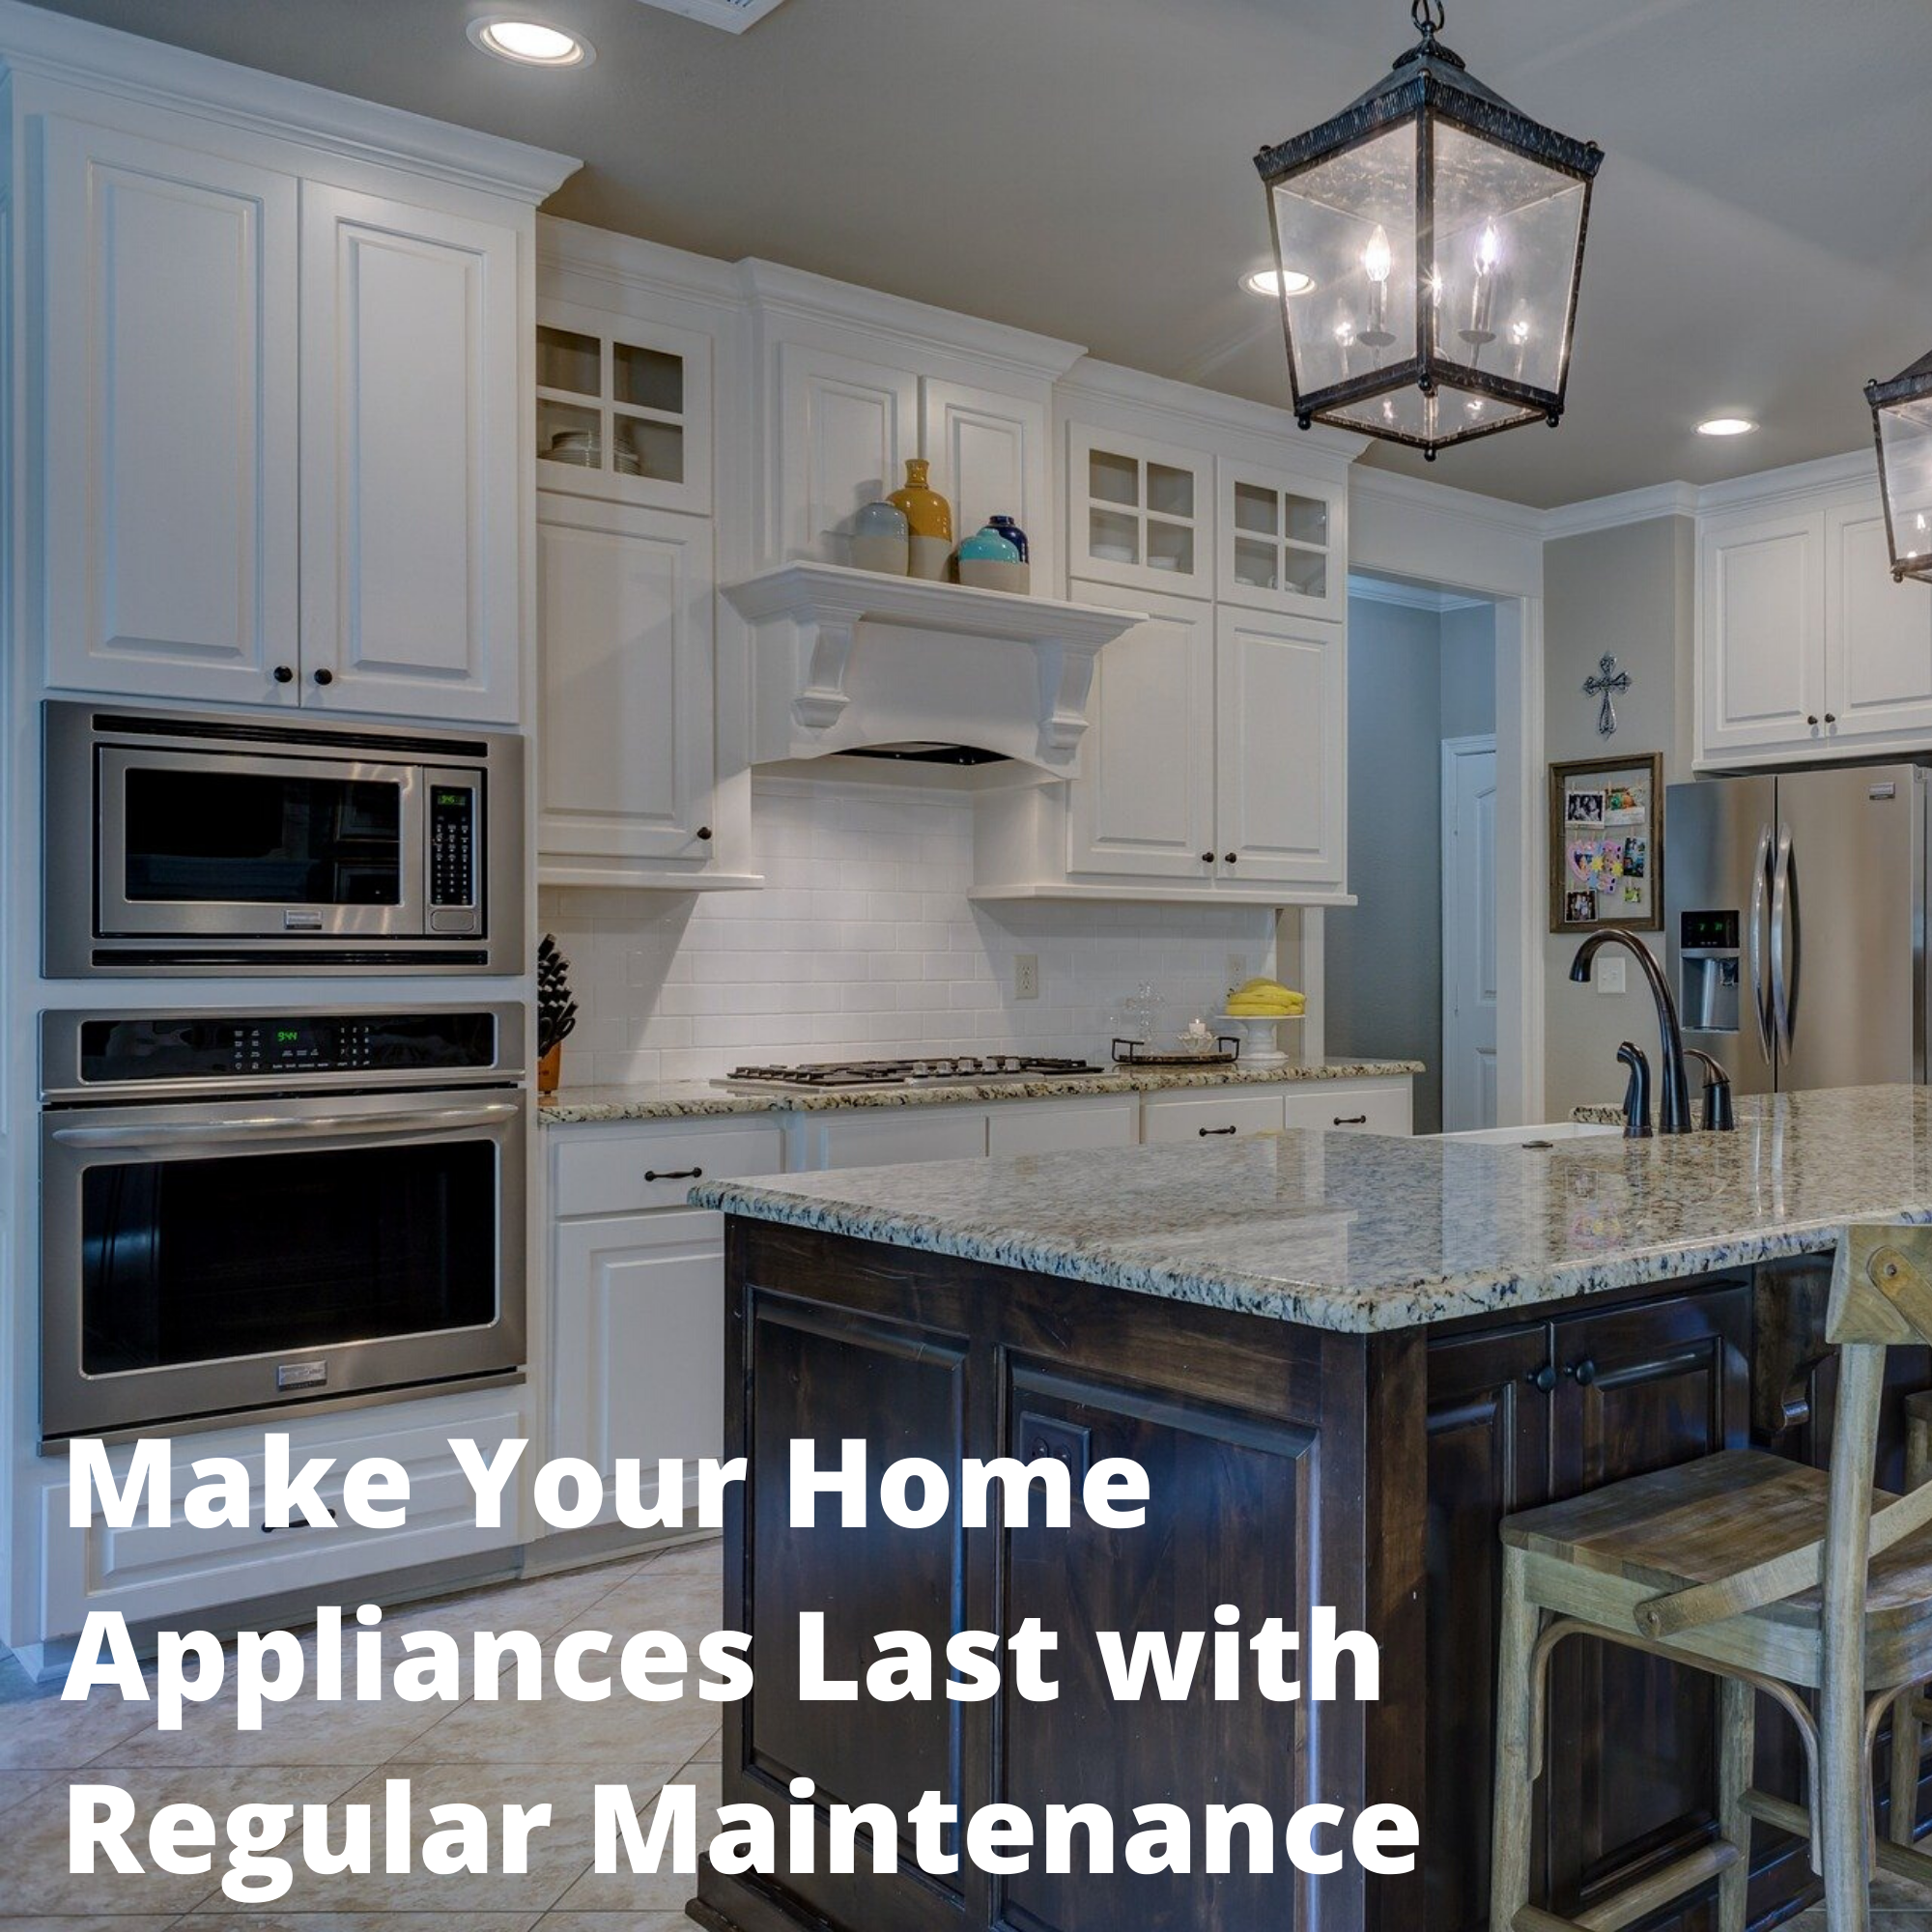 Make Your Home Appliances Last with Regular Maintenance and Care